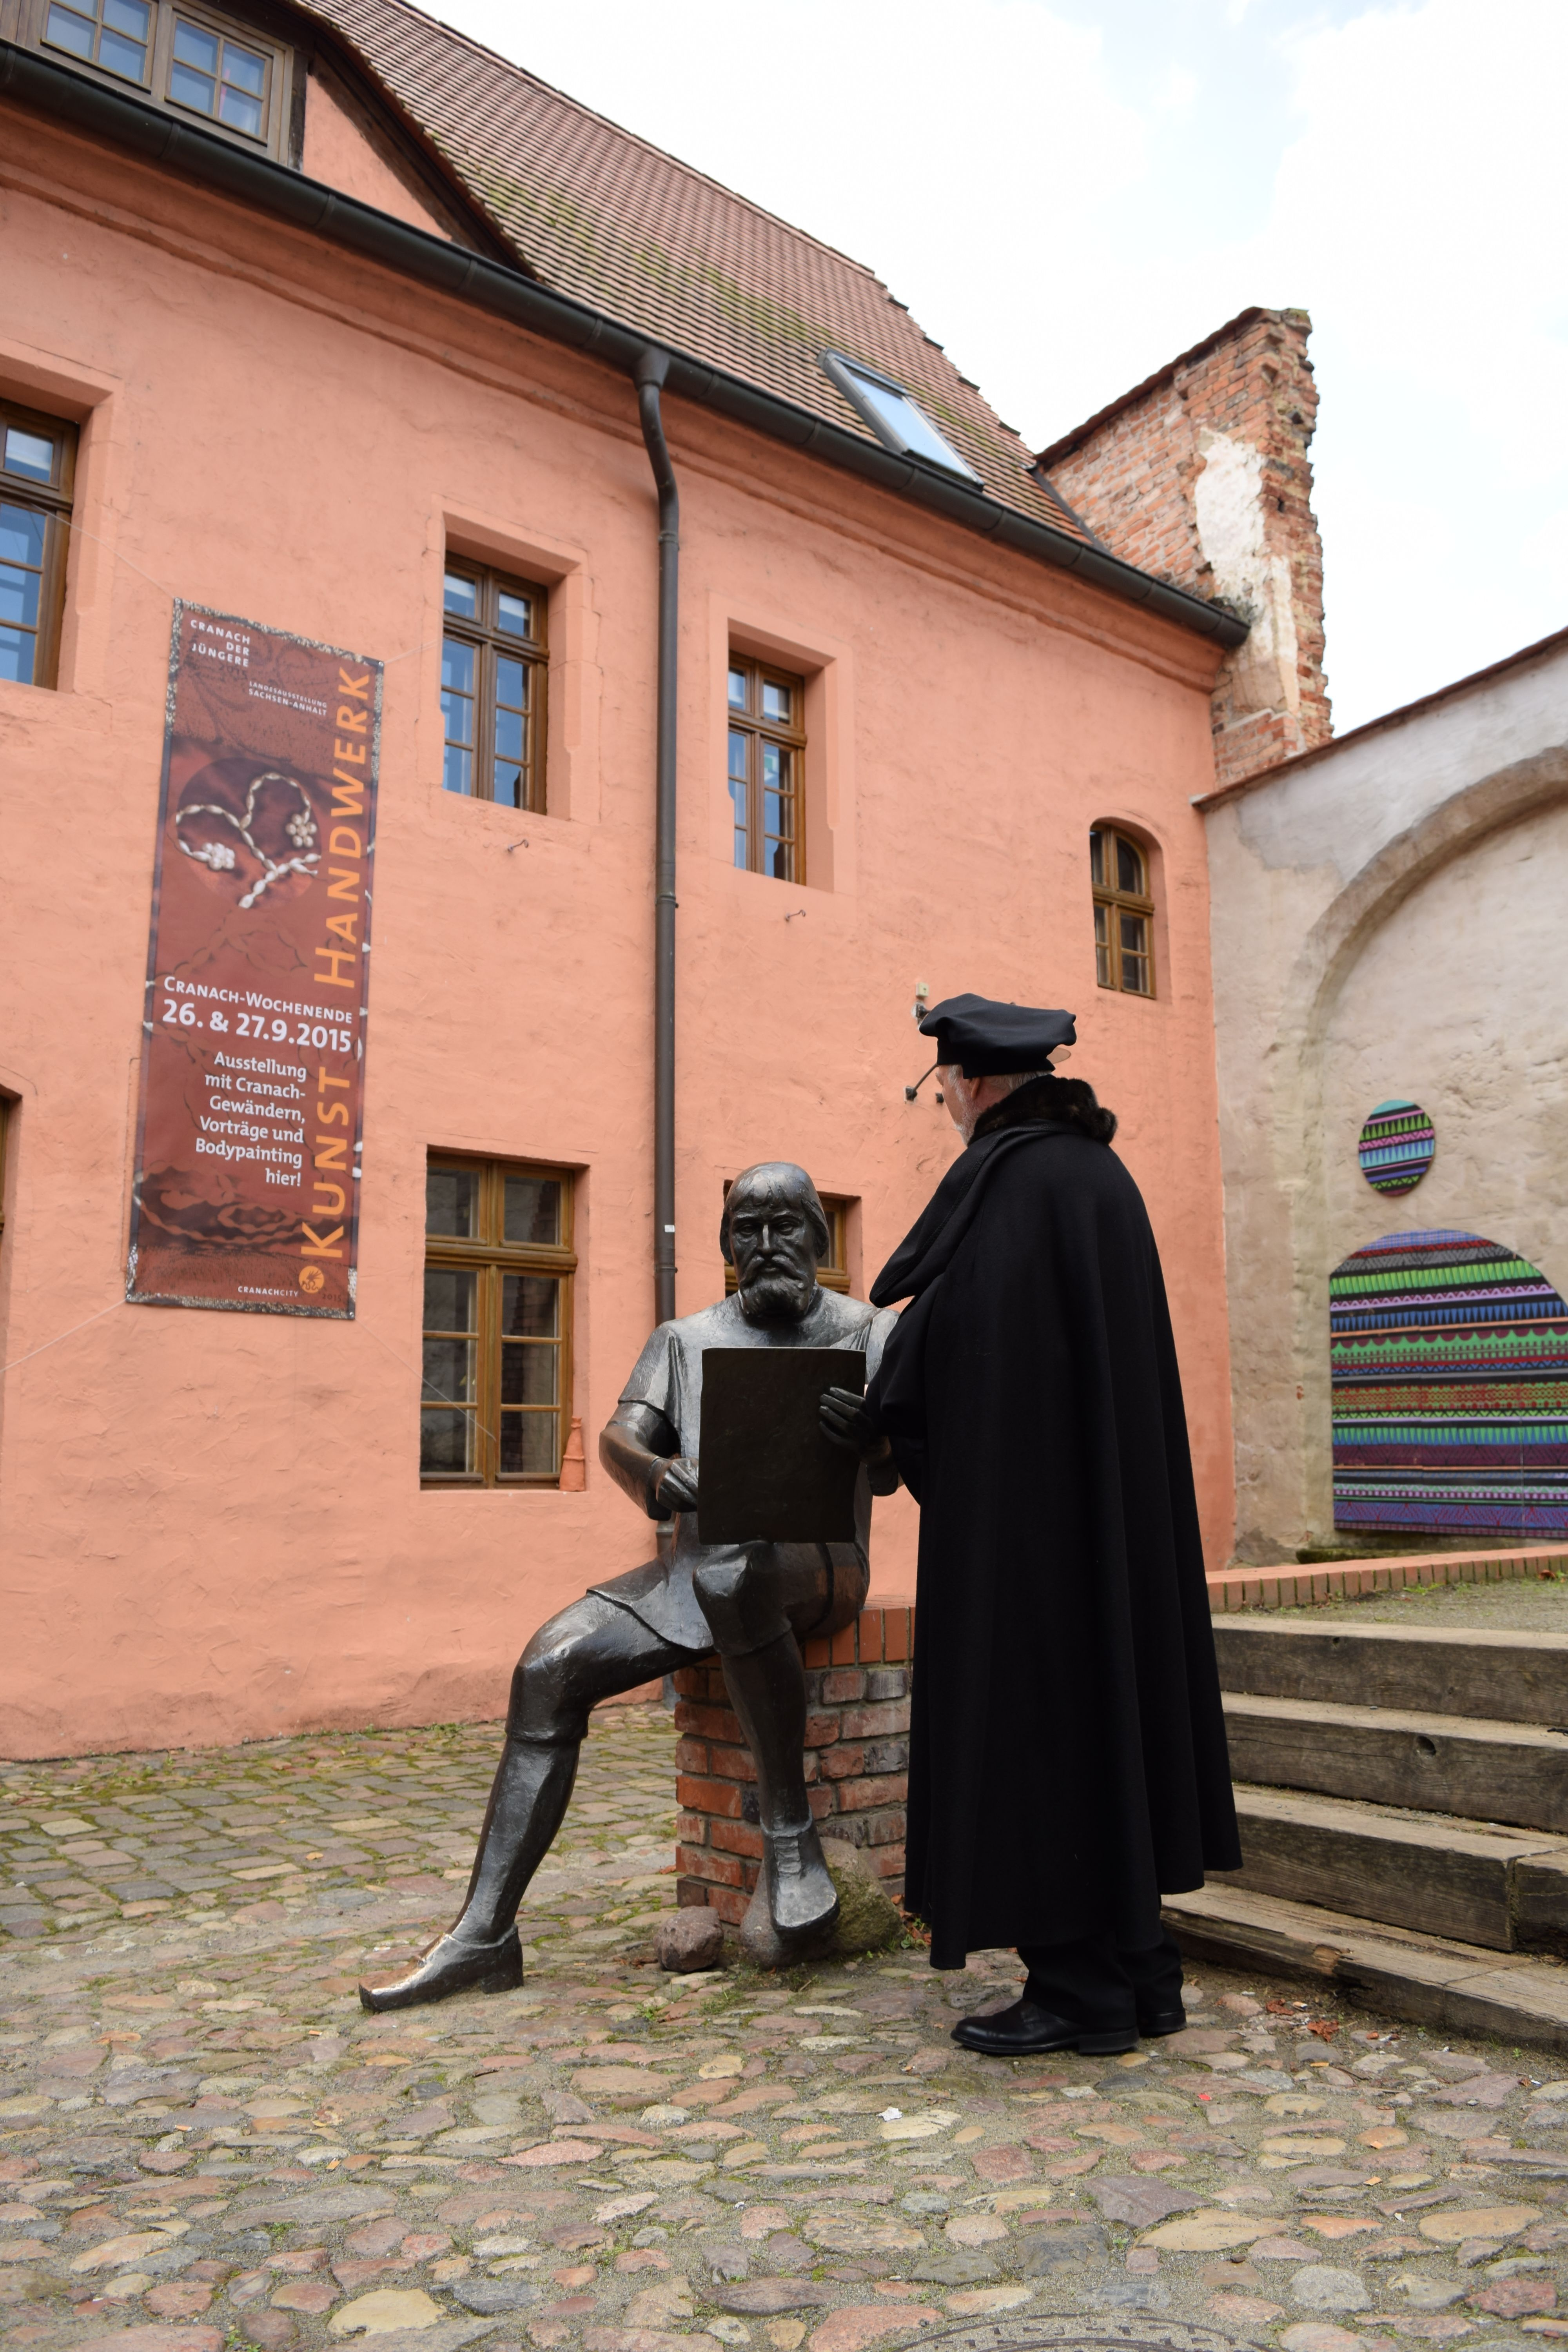 Luther found a statue of his dearest friend, Lucas Cranach the Elder, who painted portraits of Luther and his wife. He was pleased to find that the Cranach Courtyards and Cranach House are now home to a great exhibition with many of Cranach's paintings and authentic exhibits.